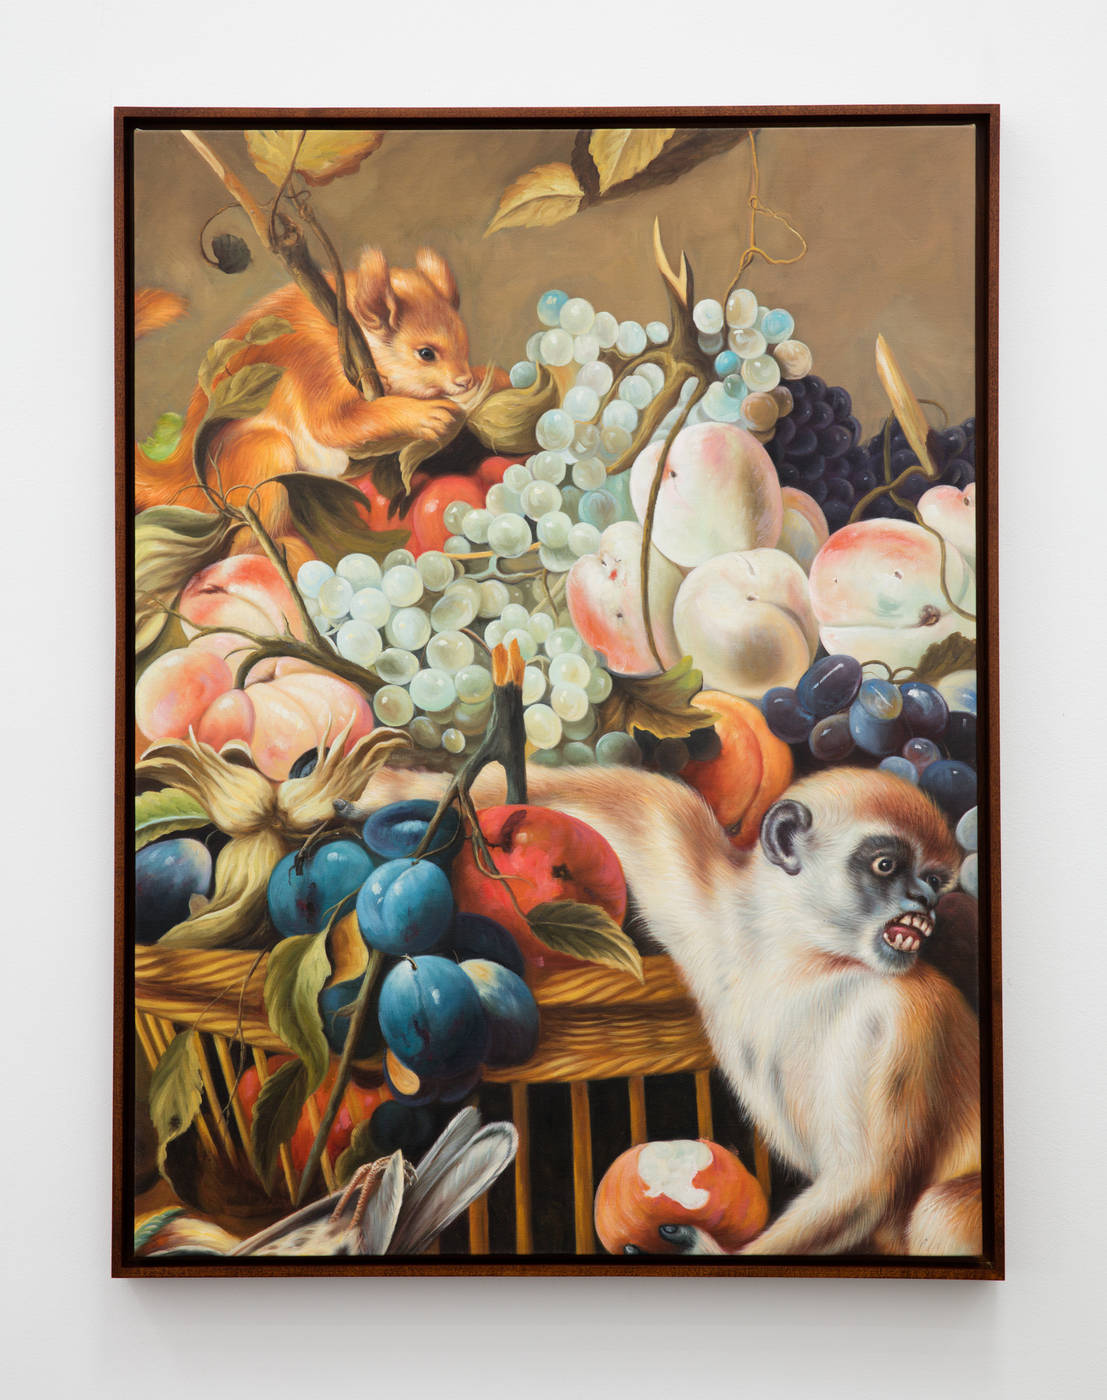 Ethan Cook - Monkey, squirrel and fruit